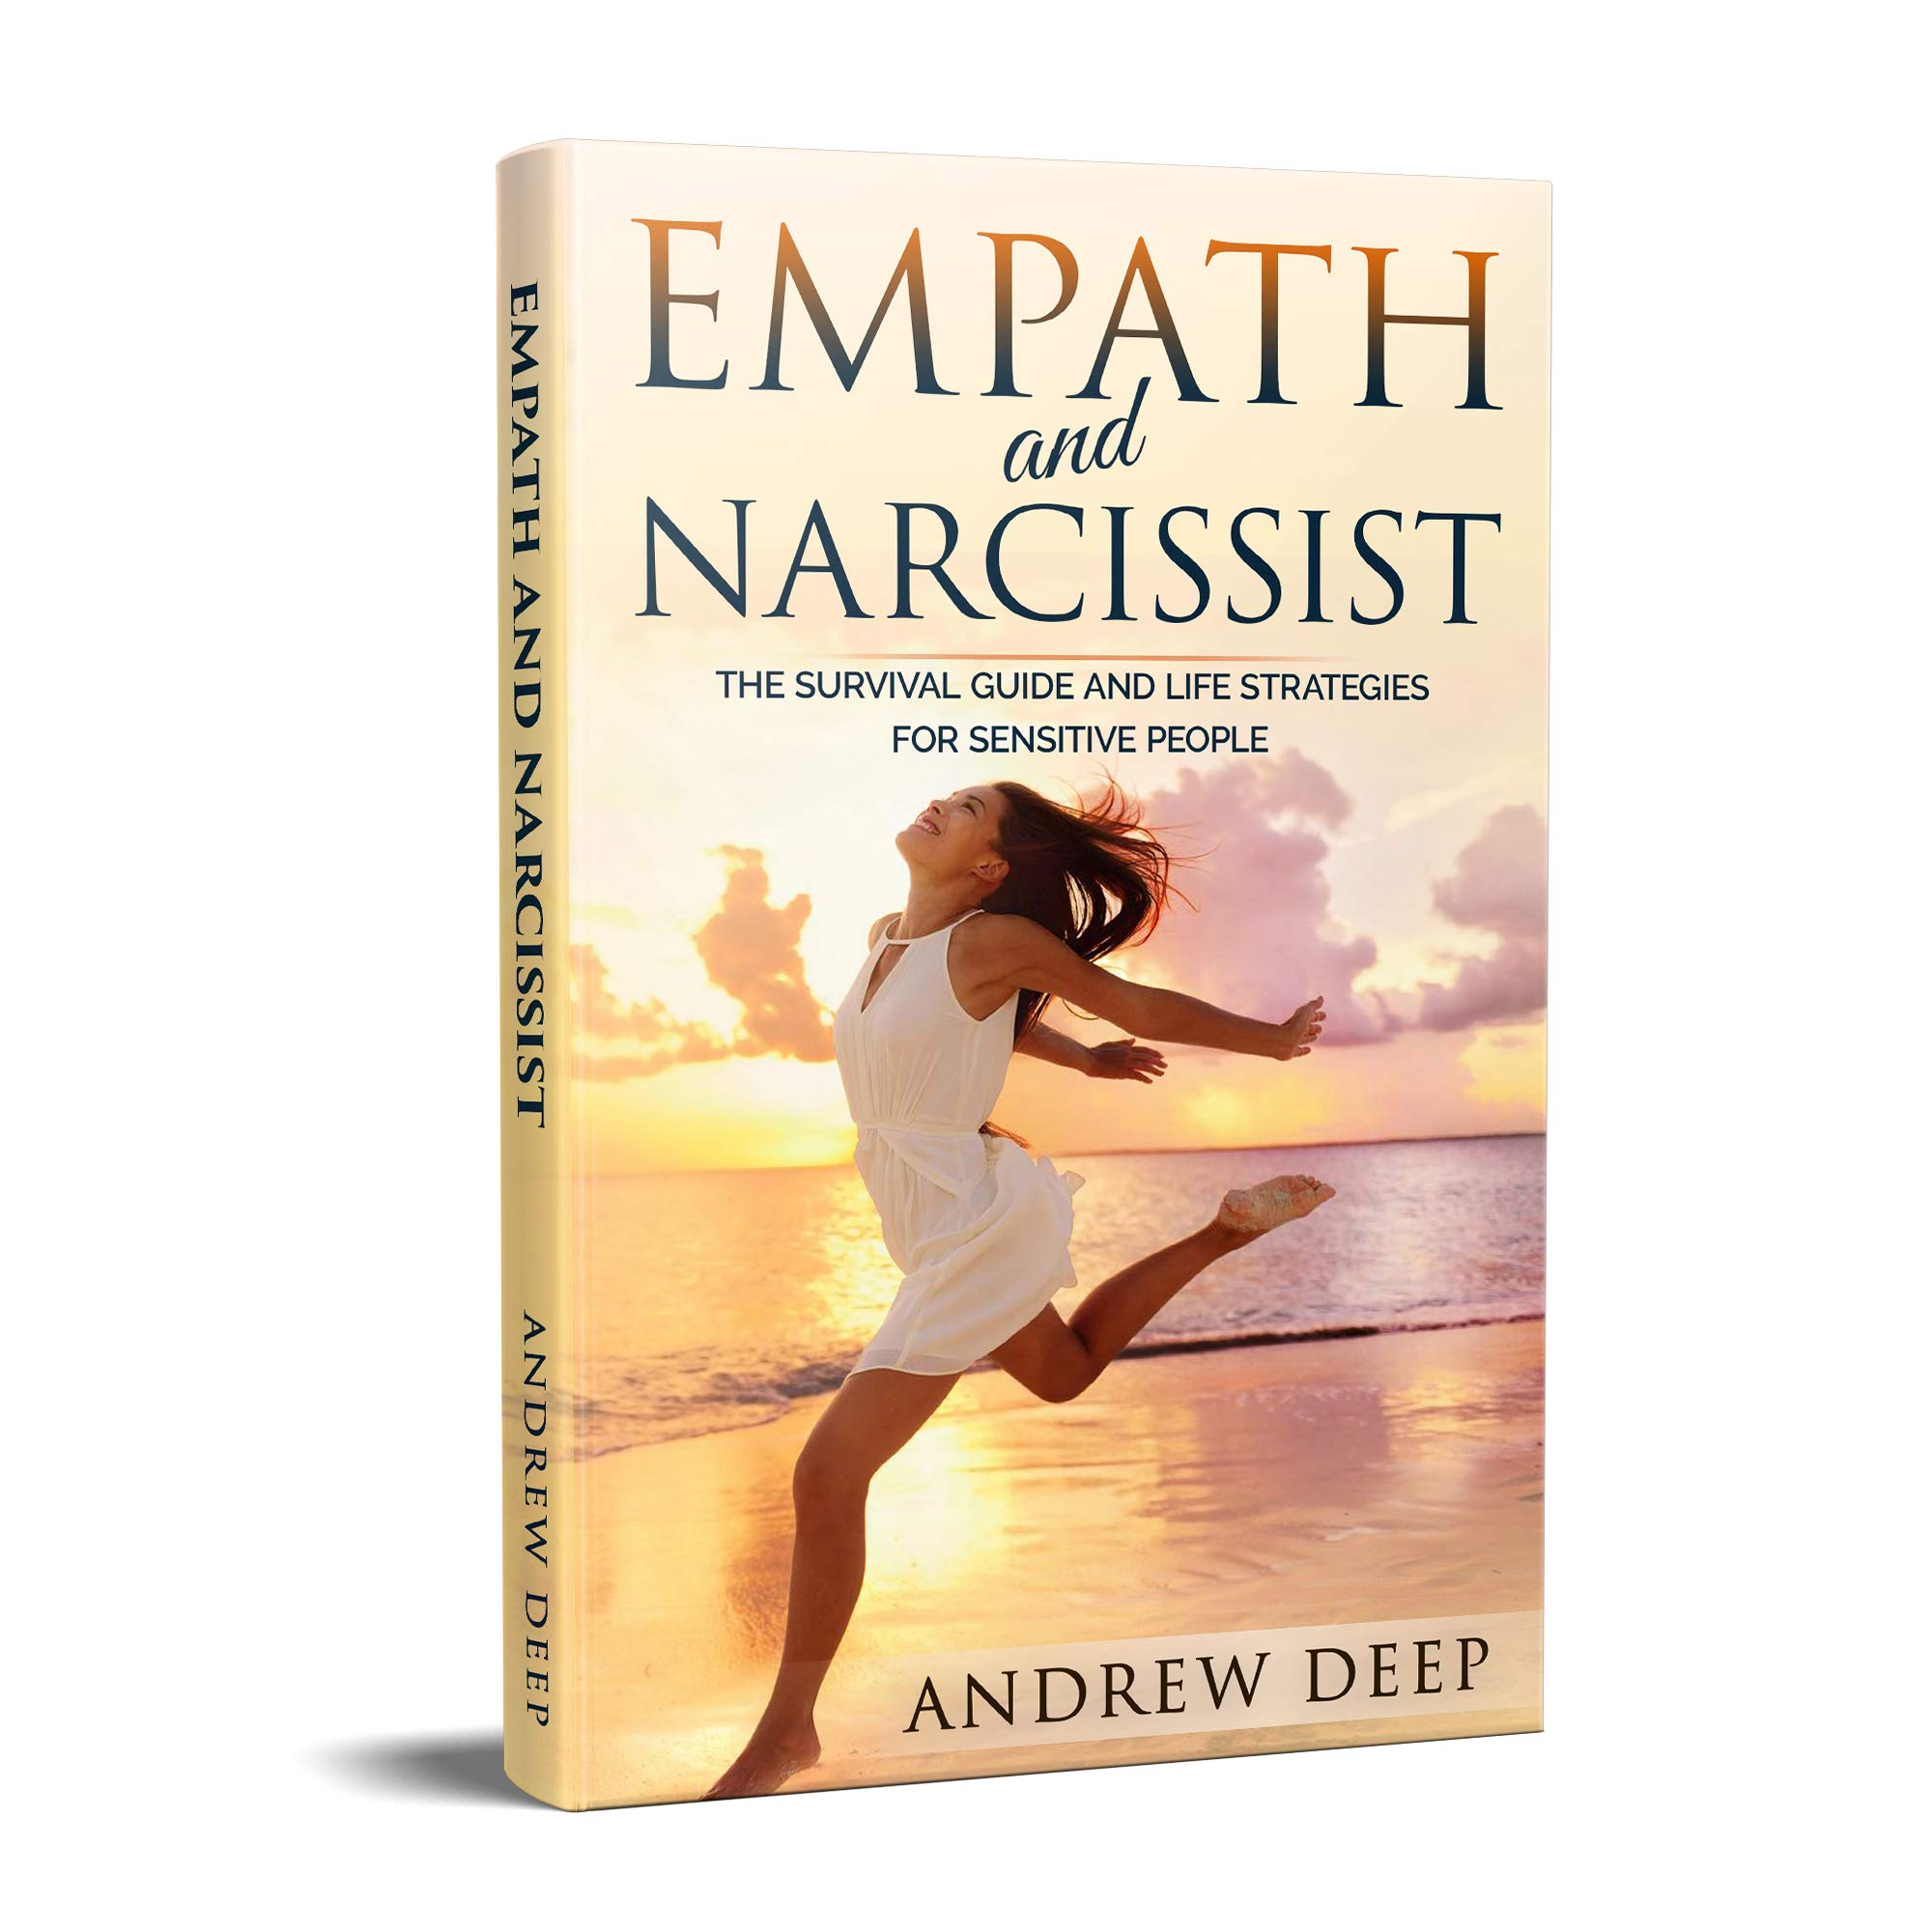 Empath and Narcissist: The Survival Guide and Life Strategies for Sensitive People (English Edition)